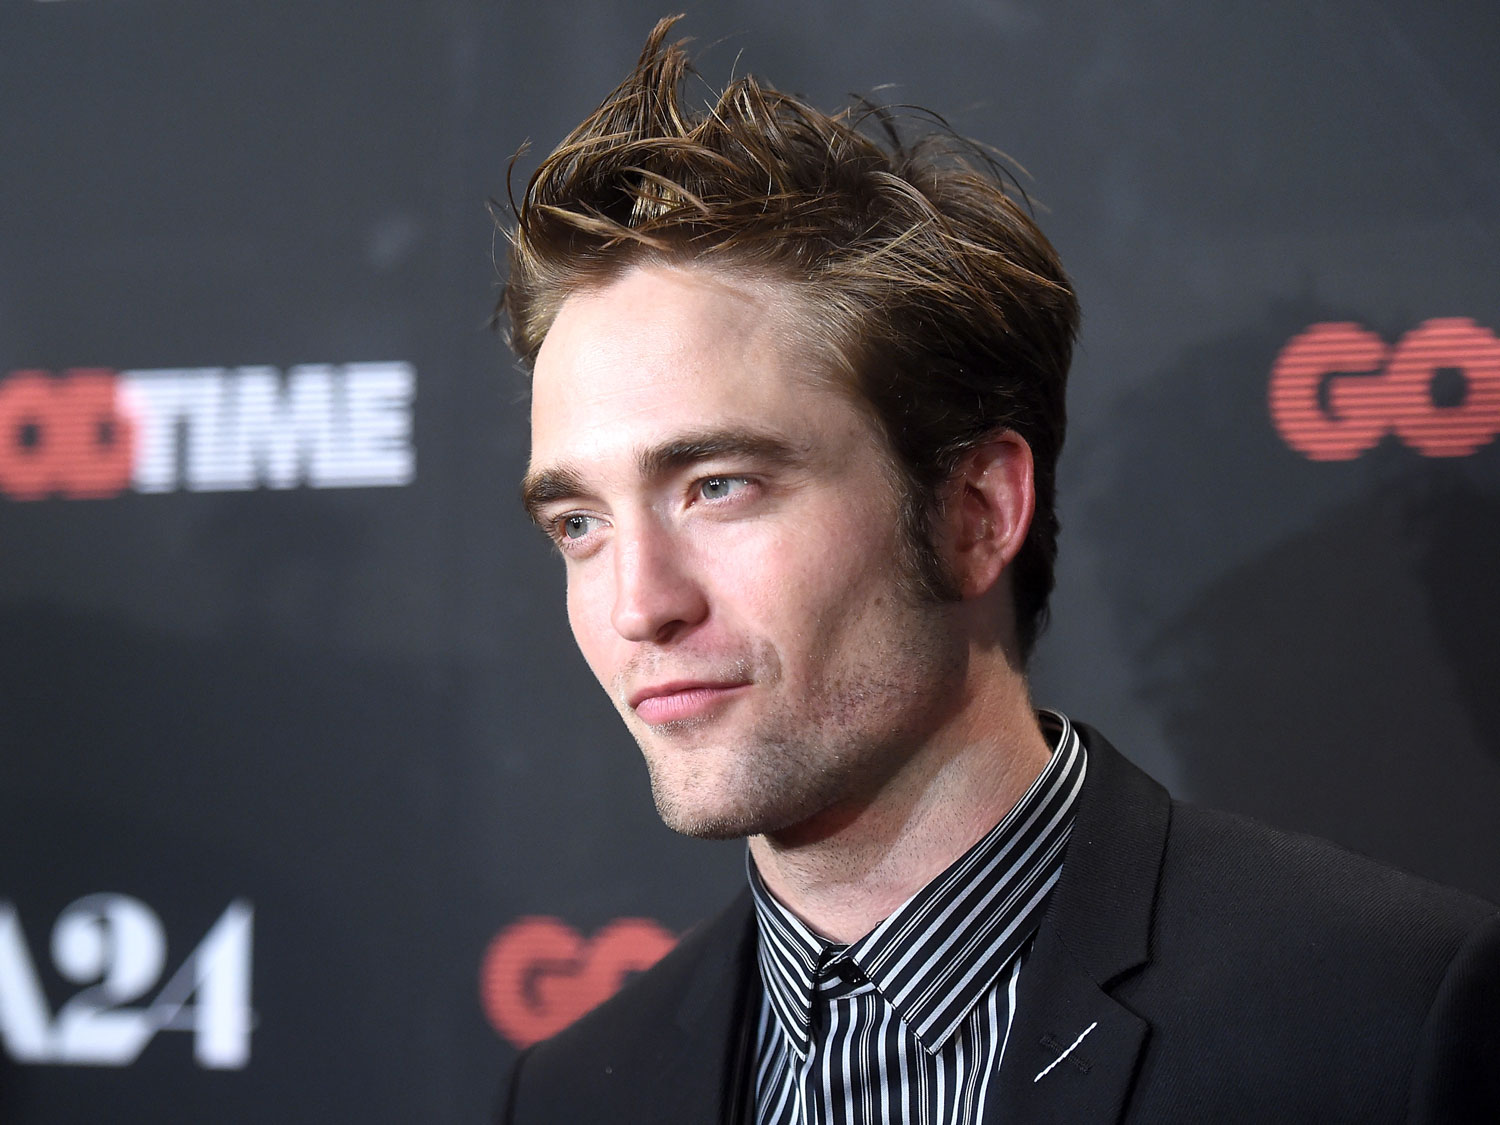 robert-pattinson-hot-dog-FT-BLOG0817.jpg